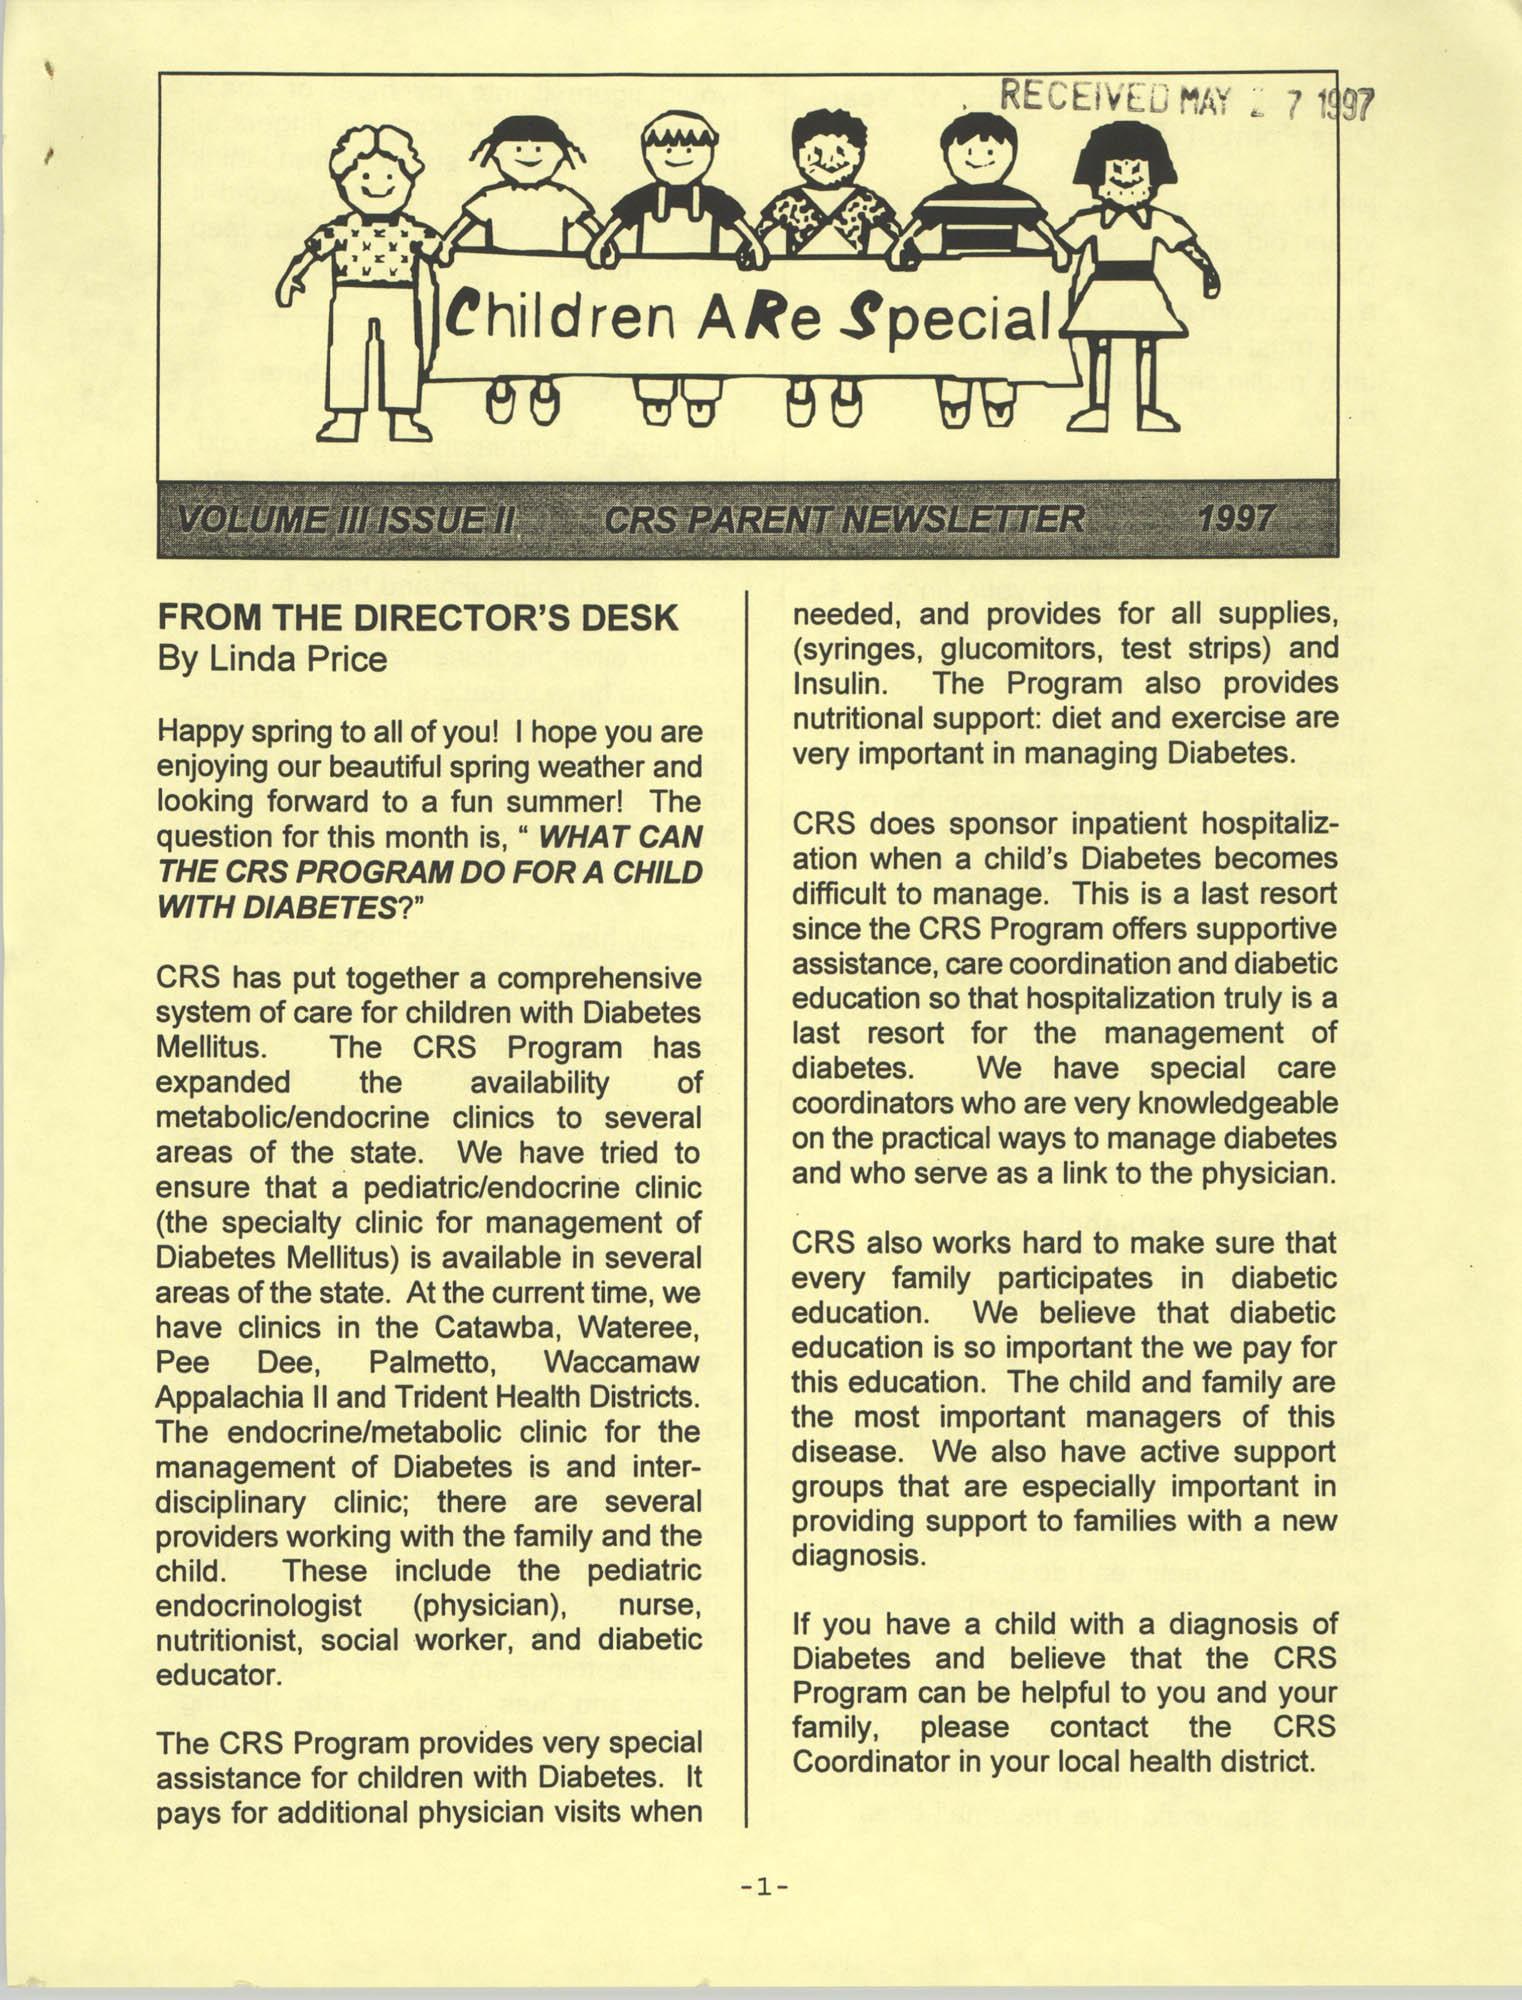 Children Are Special, Volume III, Issue II